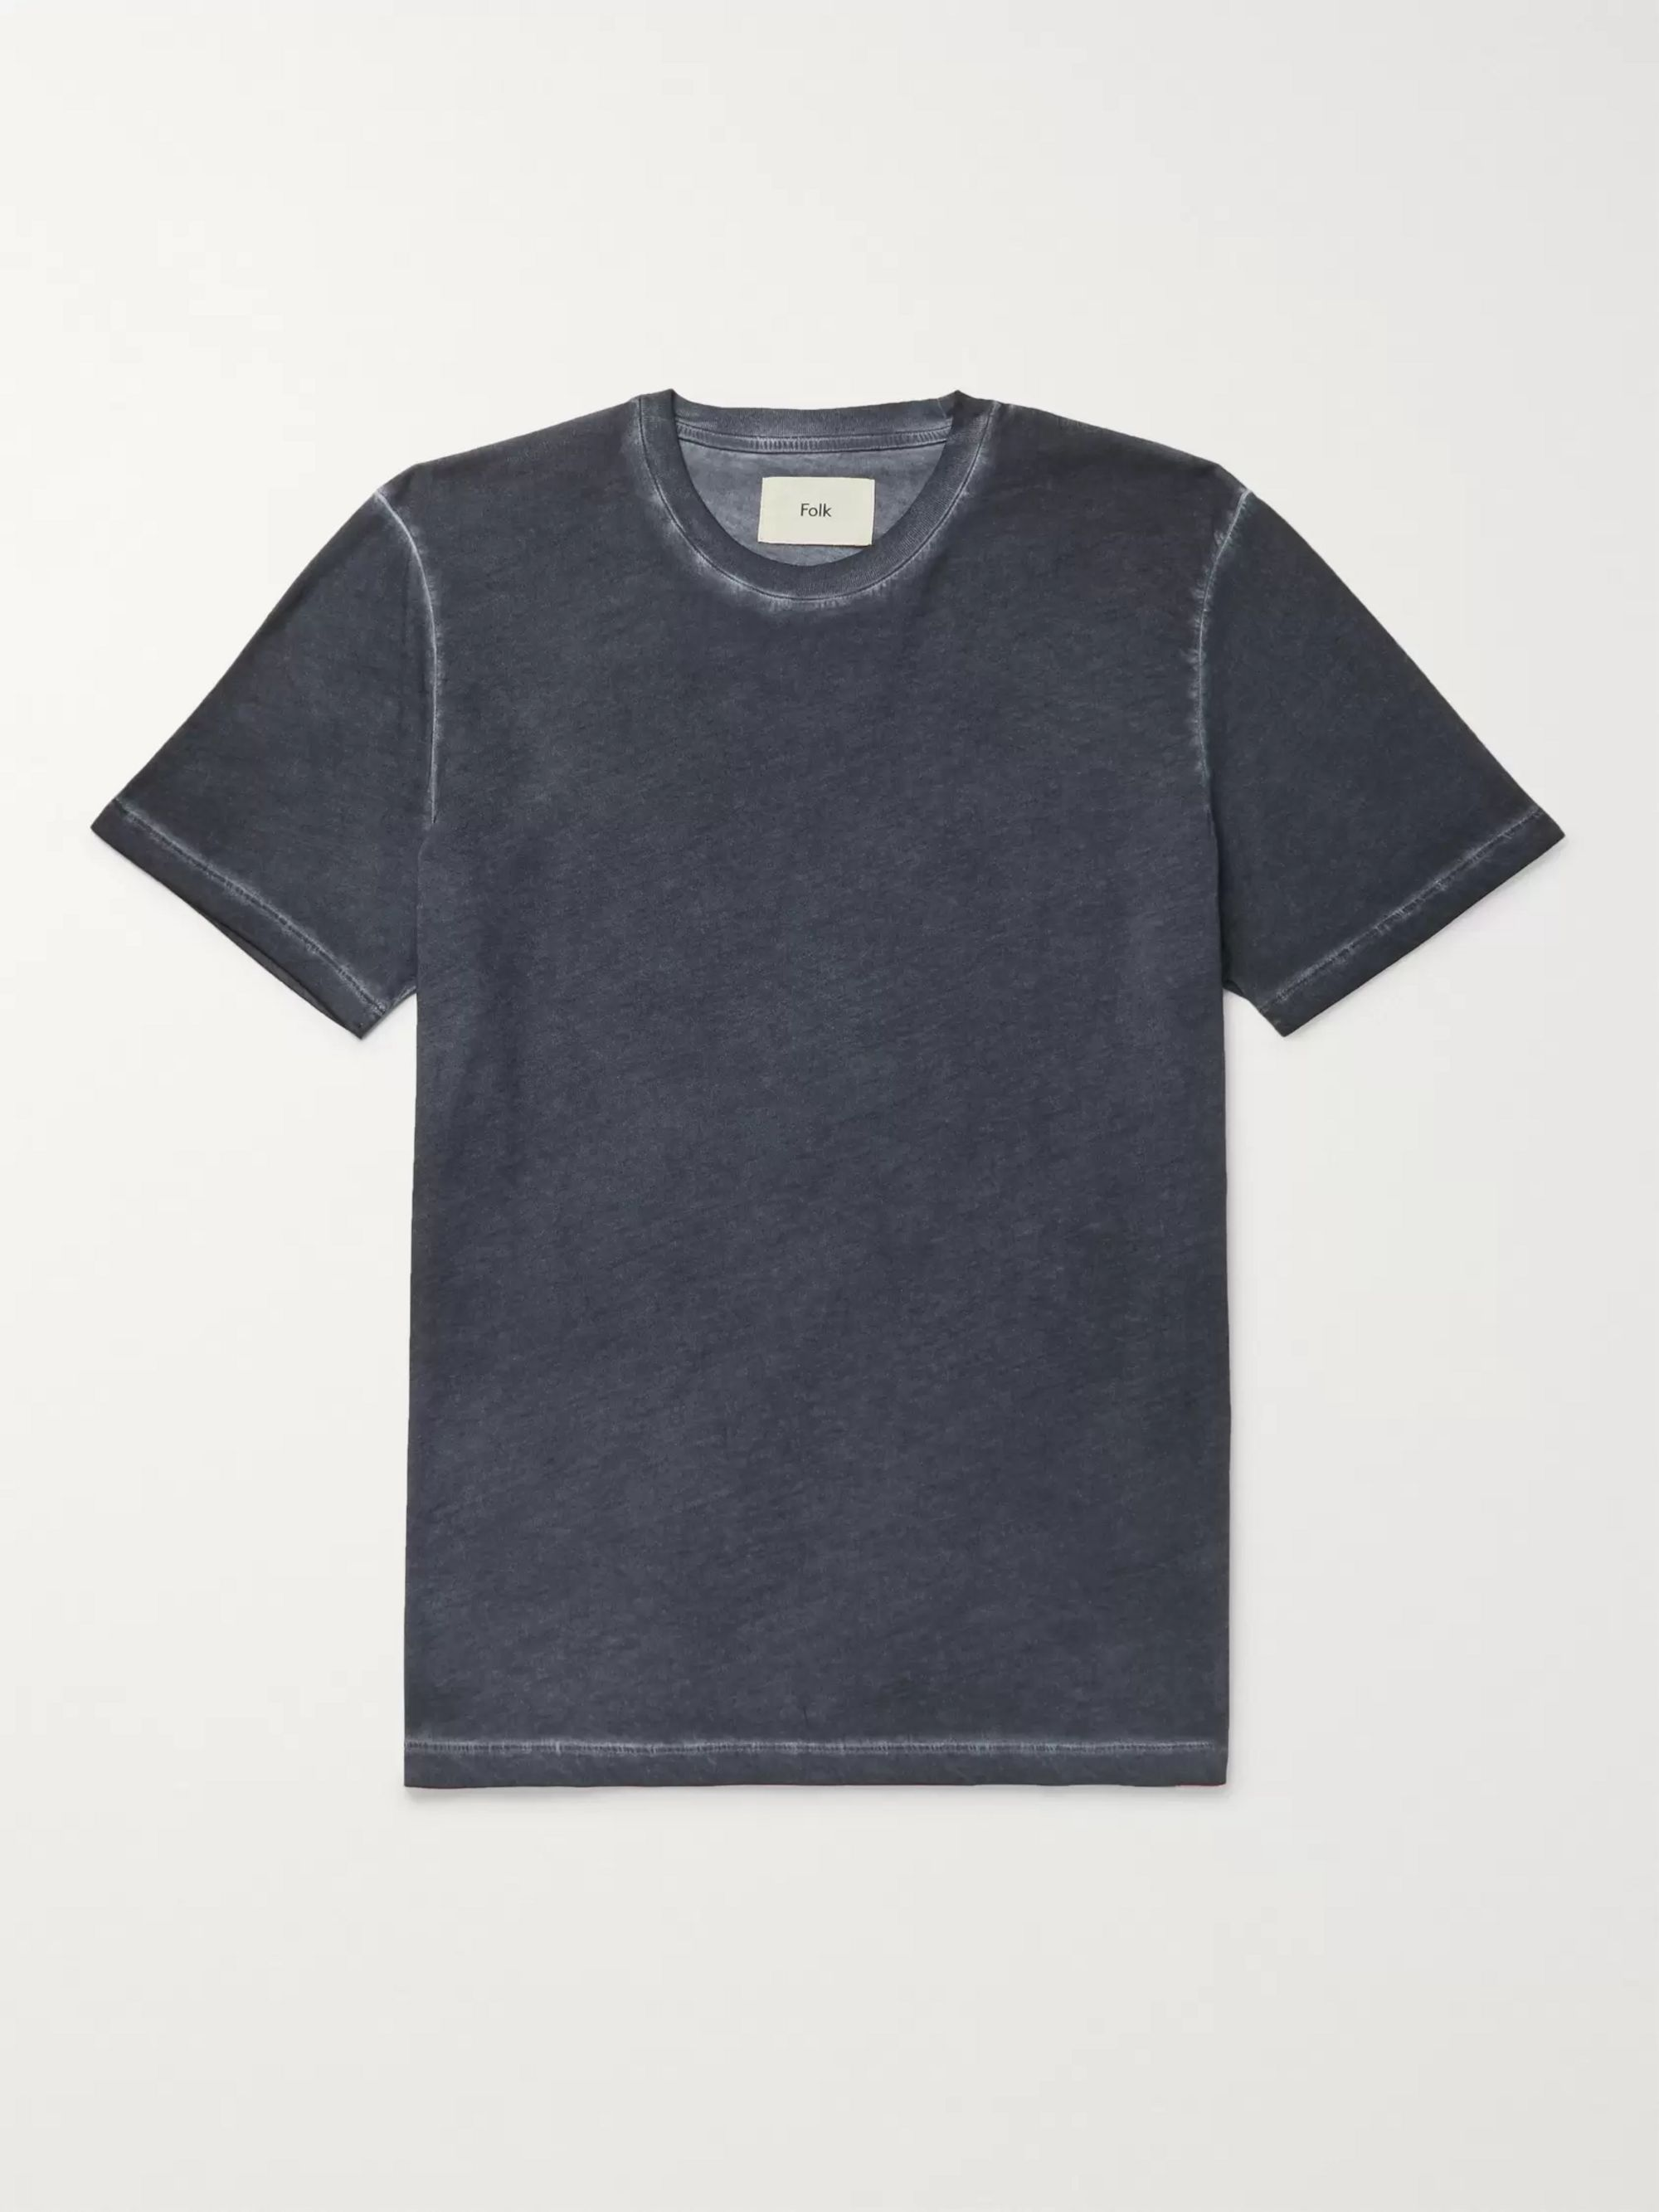 Folk Assembly Cotton-Jersey T-Shirt